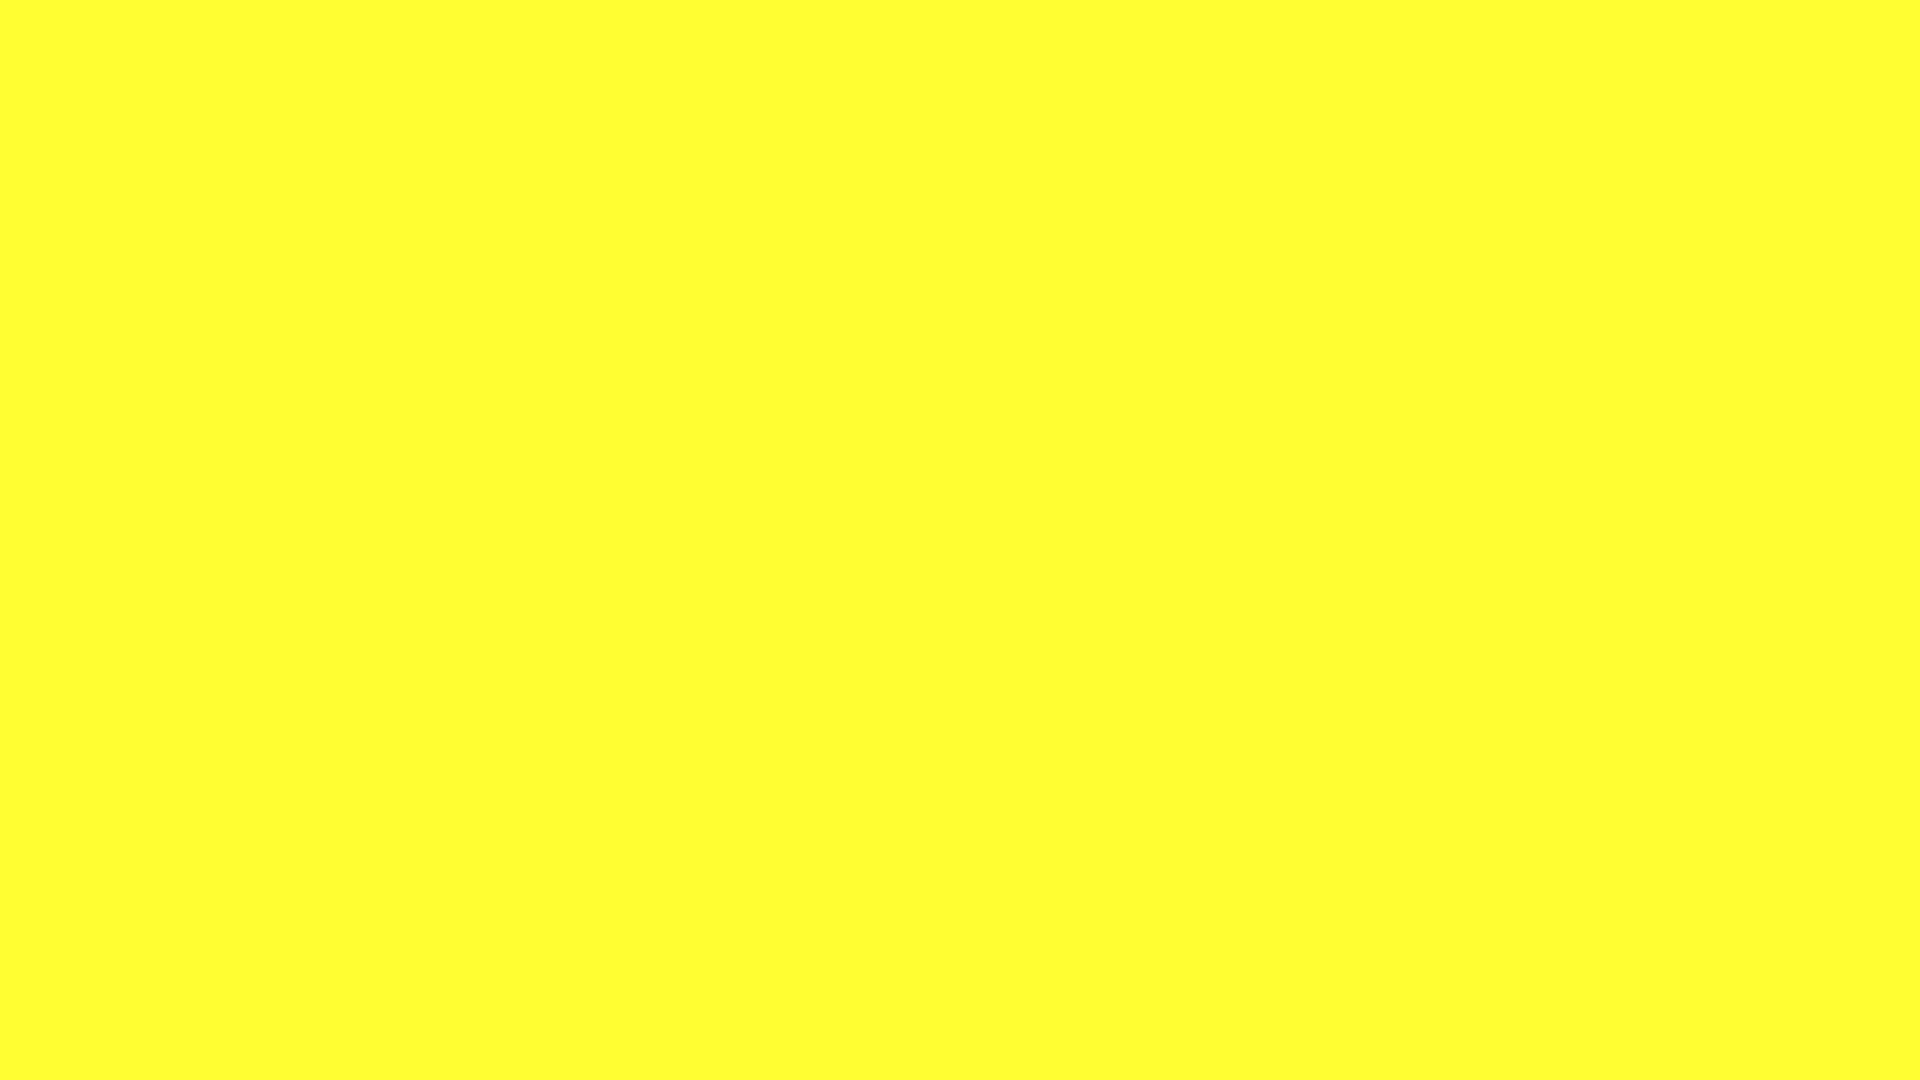 1920x1080 Yellow RYB Solid Color Background